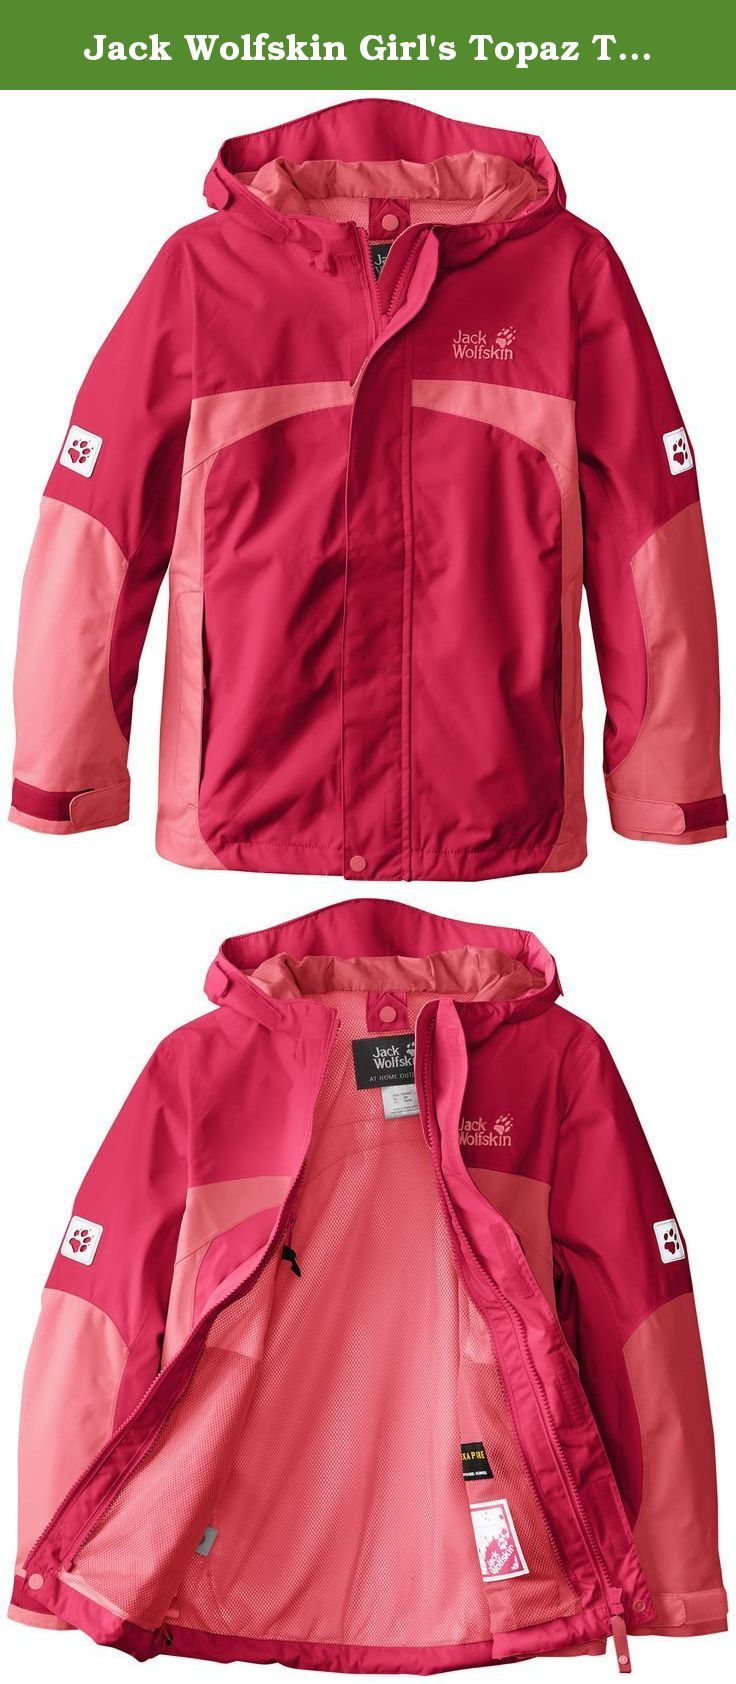 Jack Wolfskin Girl's Topaz Texapore Jacket, Azalea Red, 128. This waterproof, breathable hoody is lightweight and supple and equipped with an integrated hood and reflectors. The system zip means that it's suitable for year-round wear, as an insulating inner jacket can be zipped in.